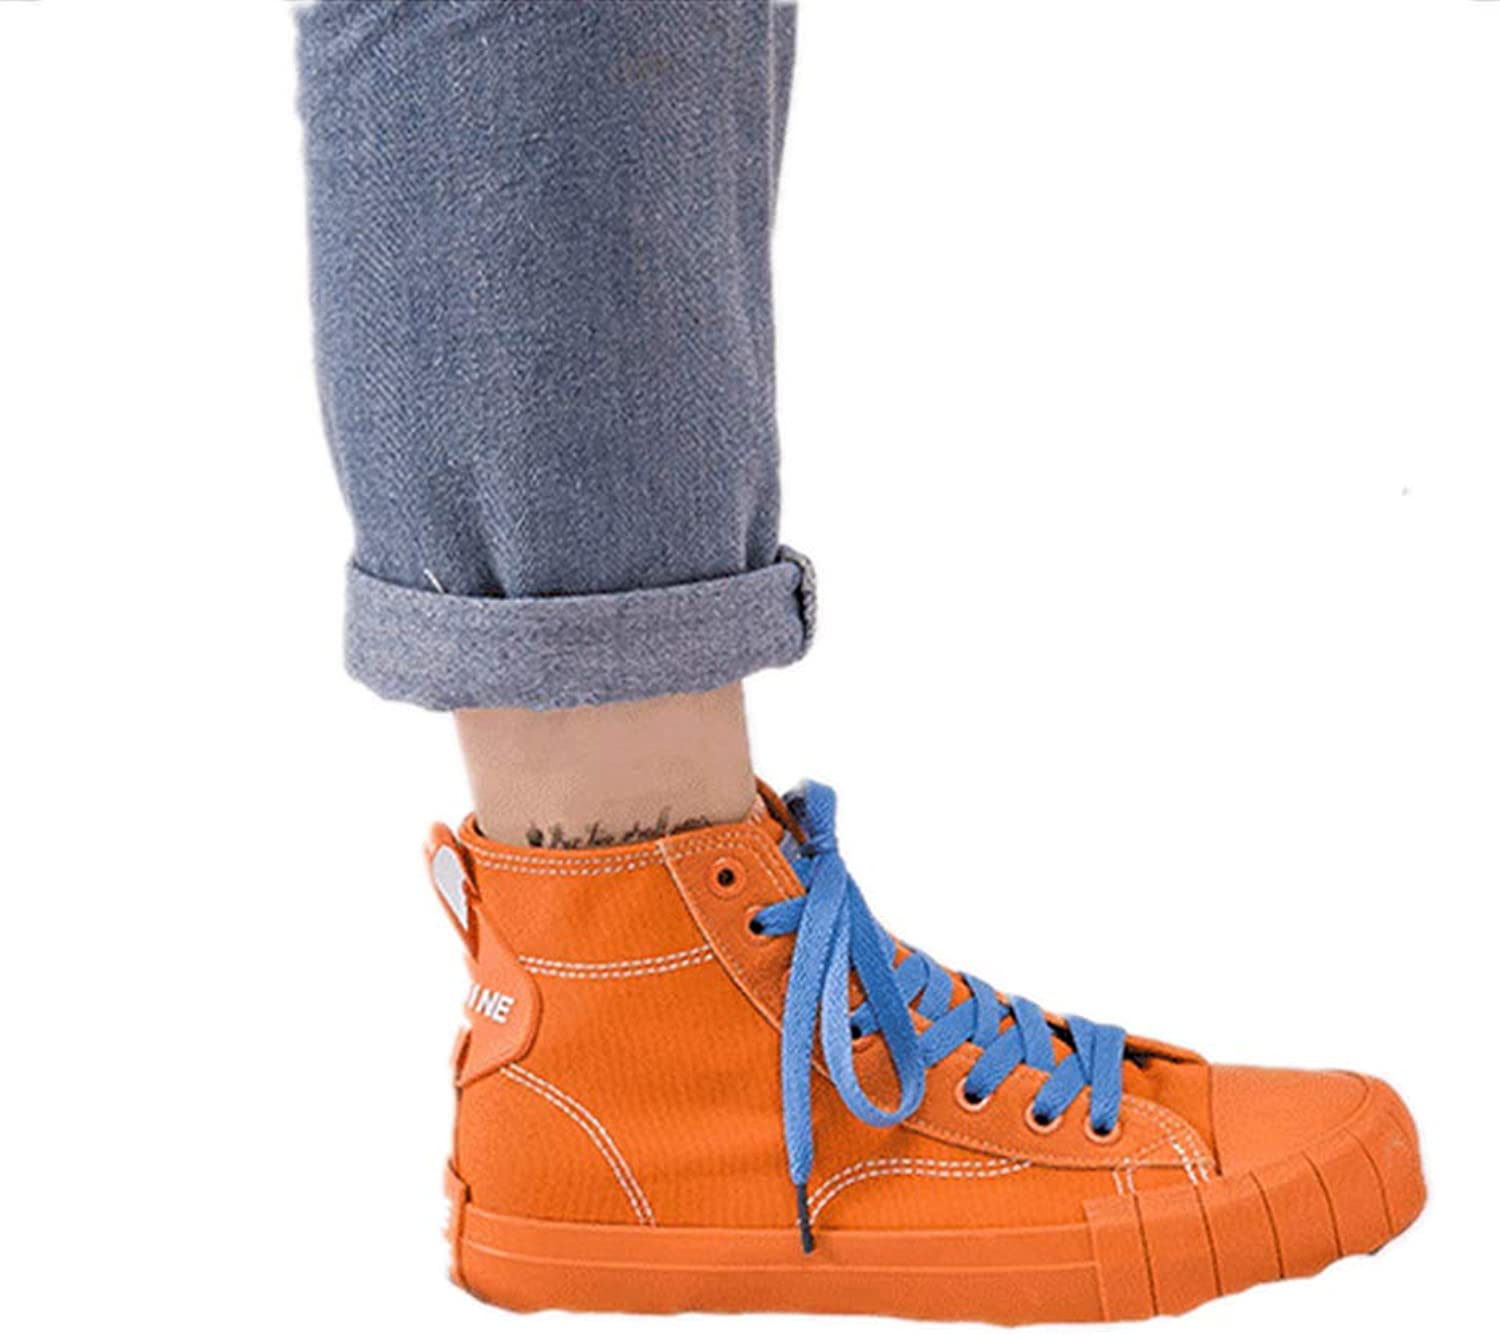 Meimeioo Adult Women's Flat High Top Lace up Casual Canvas shoes Fashion Sneakers